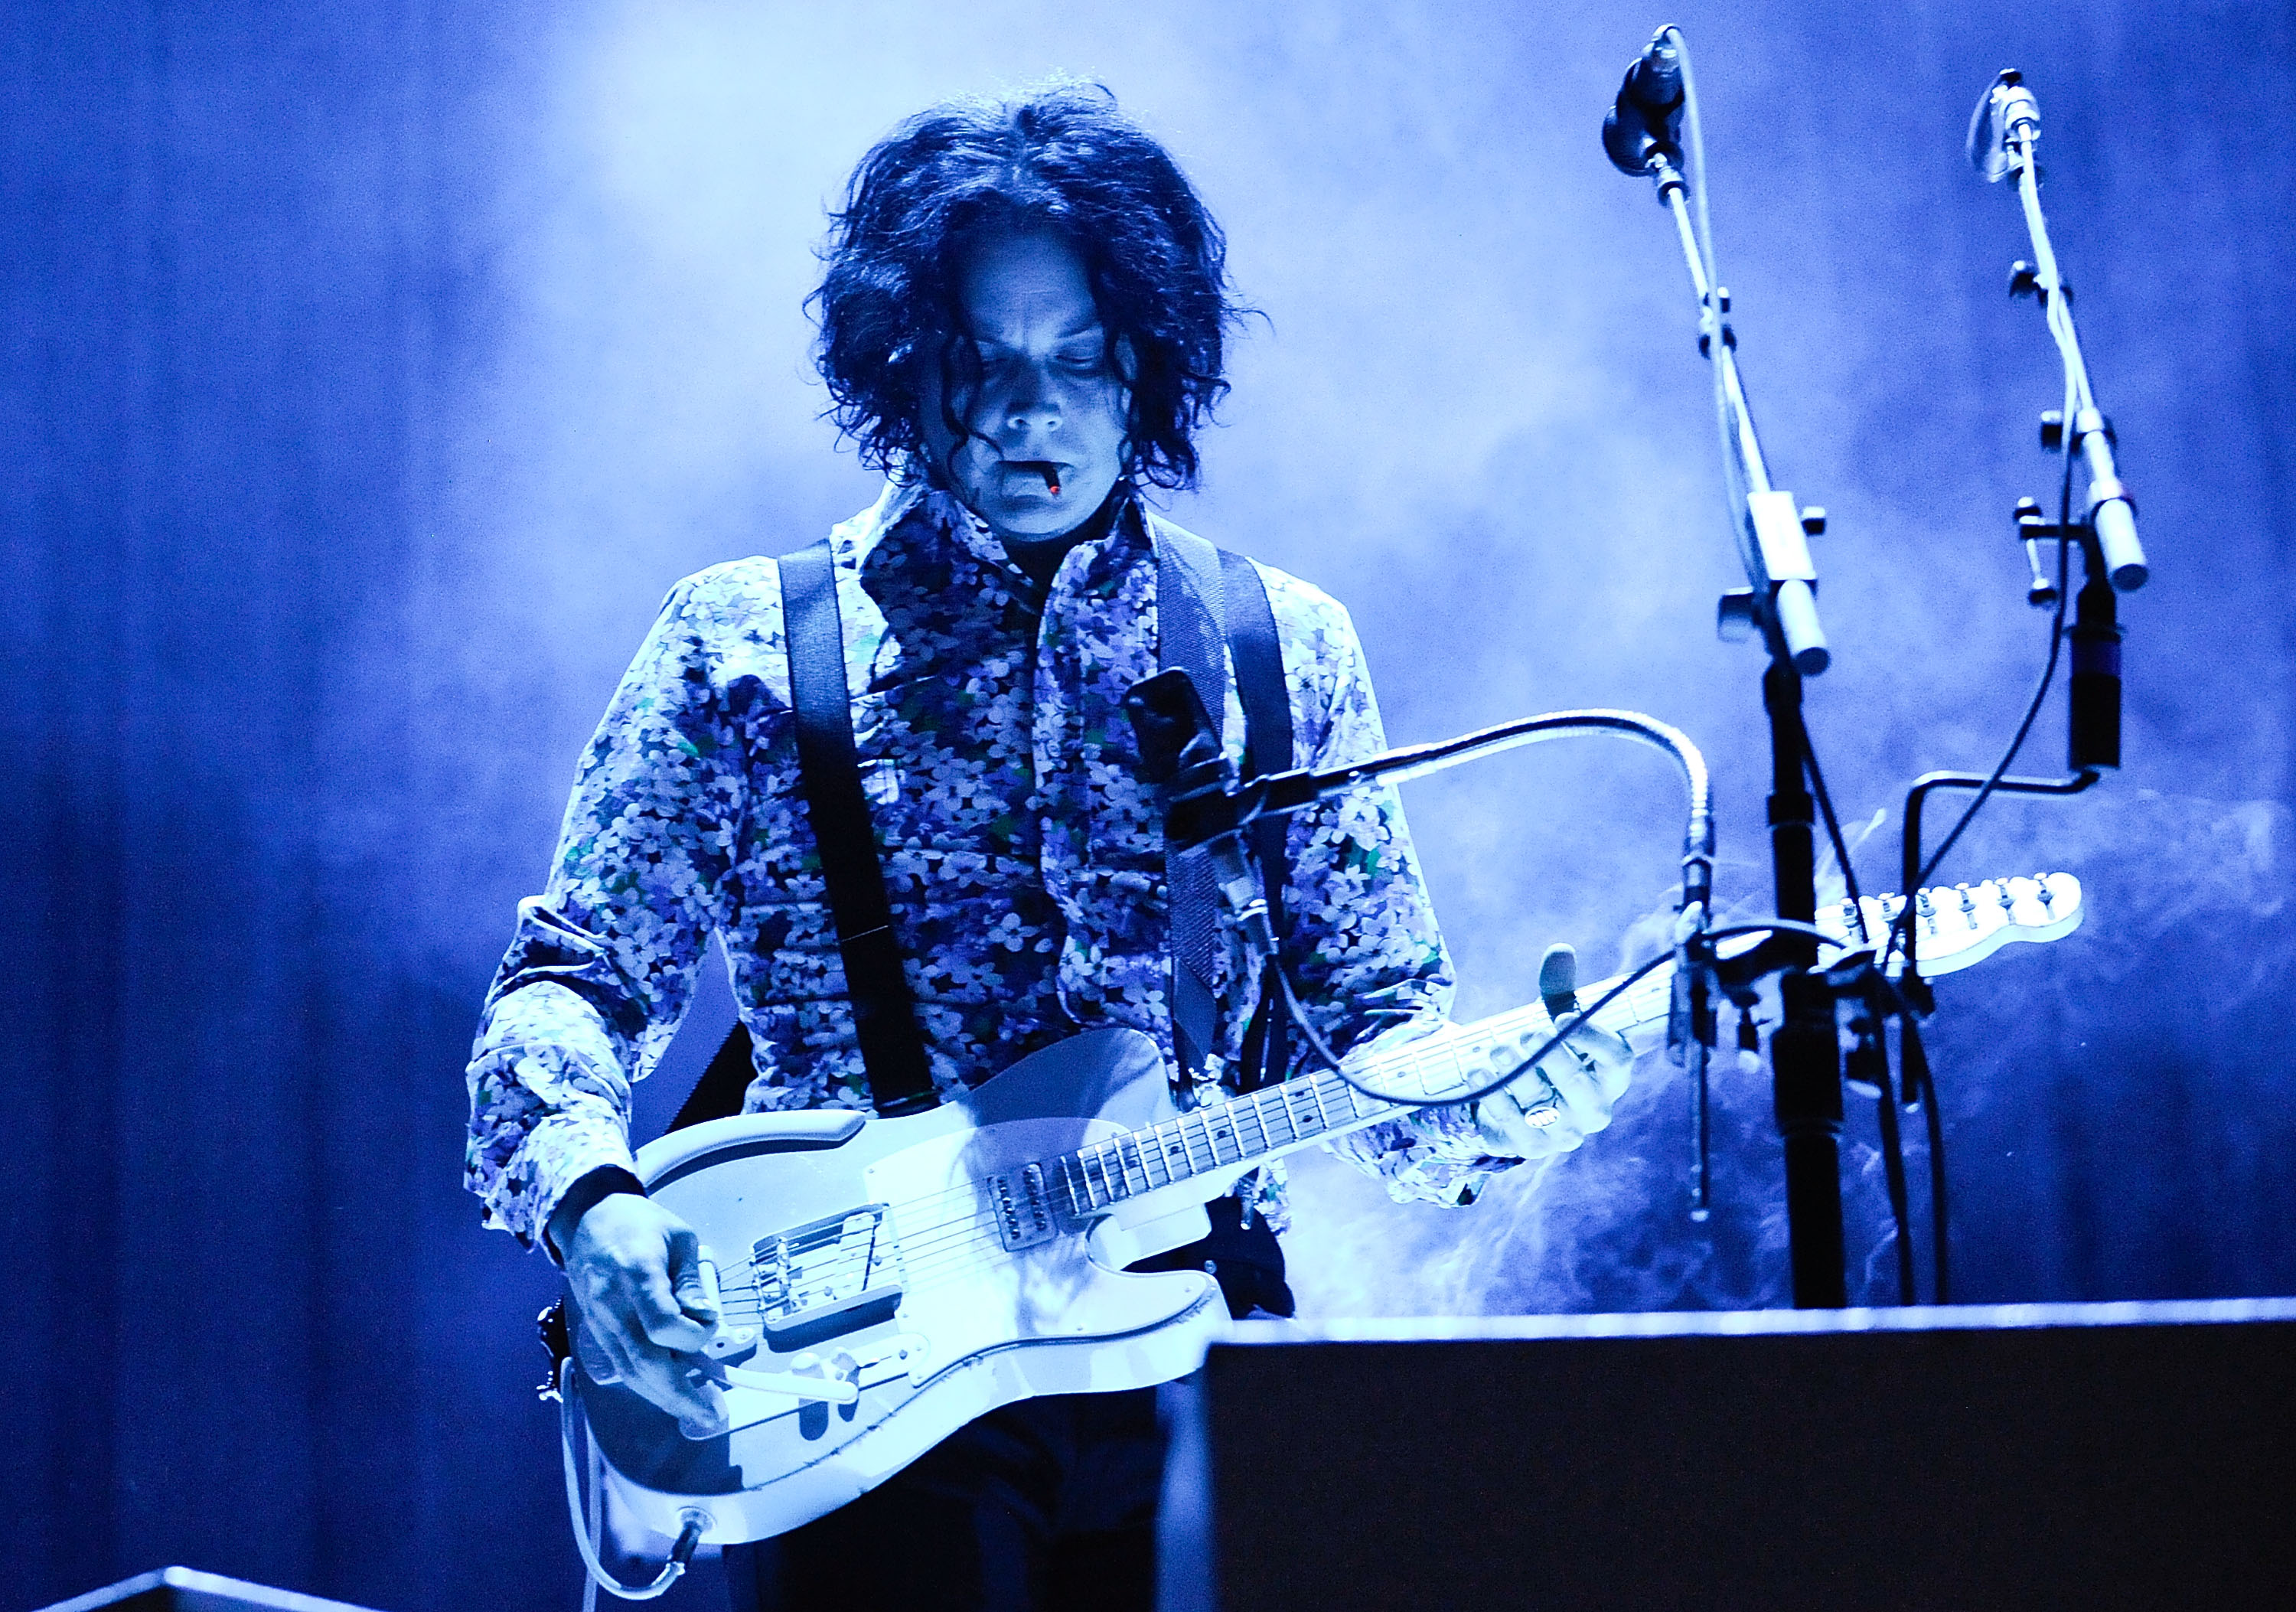 Jack White performs during the 2014 Governors Ball Music Festival at Randall's Island, New York City, on June 7, 2014